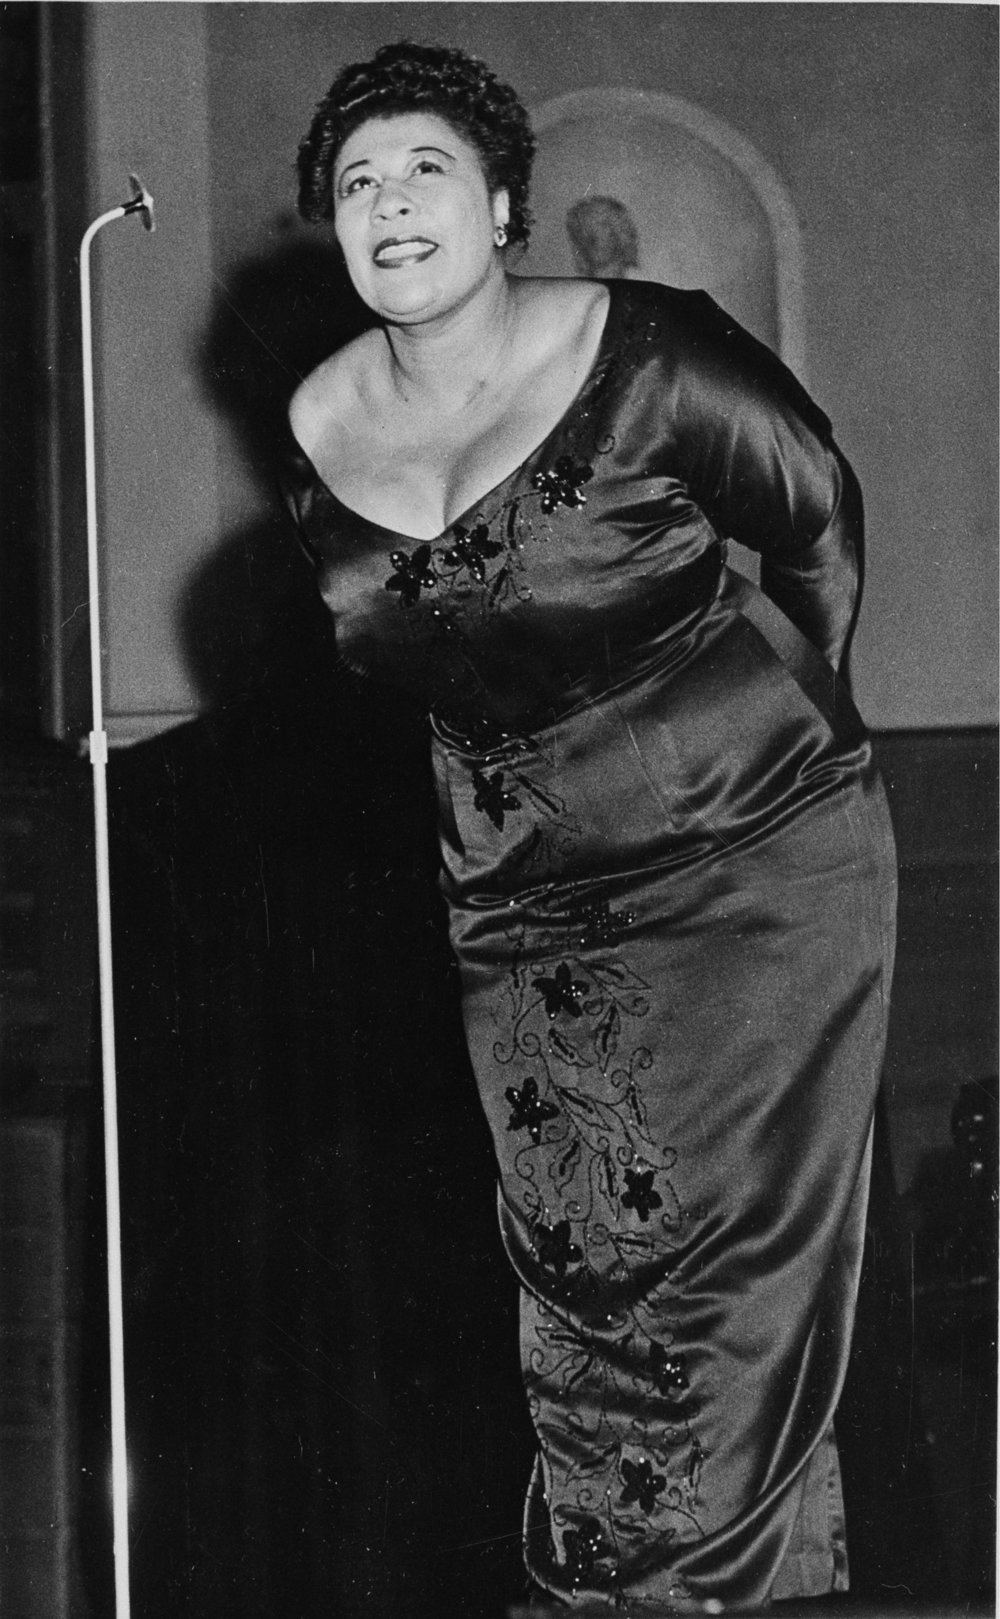 dp-pictures-ella-fitzgerald-through-the-years--001.jpg